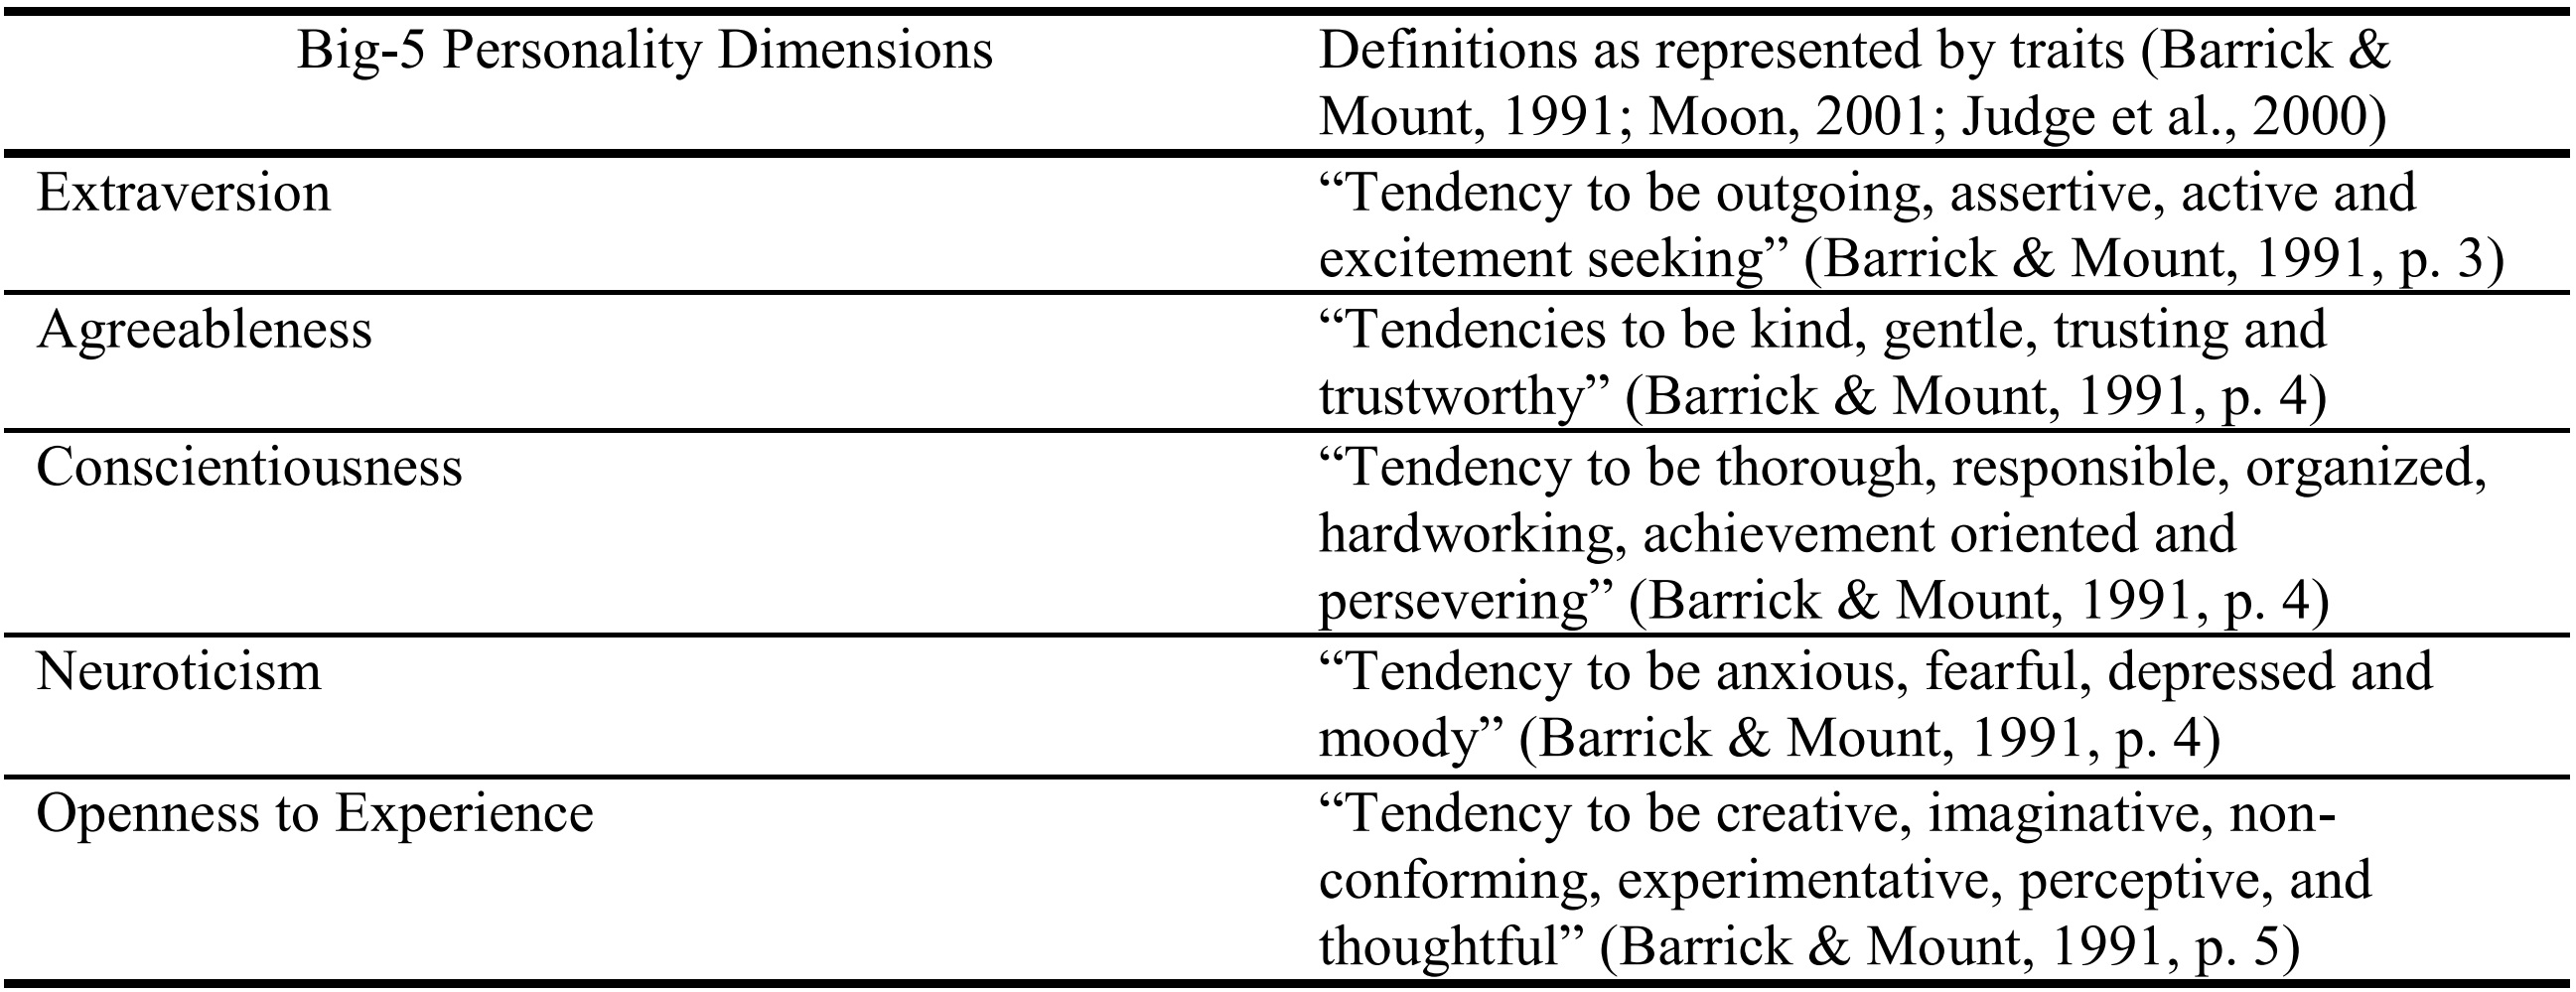 my personal qualities and influences Personality is defined as the characteristic set of behaviors, cognitions, and  emotional patterns  this means that the happiness levels of extraverted  individuals are less susceptible to the influence of external events  cross- cultural assessment depends on the universality of personality traits, which is  whether there are.